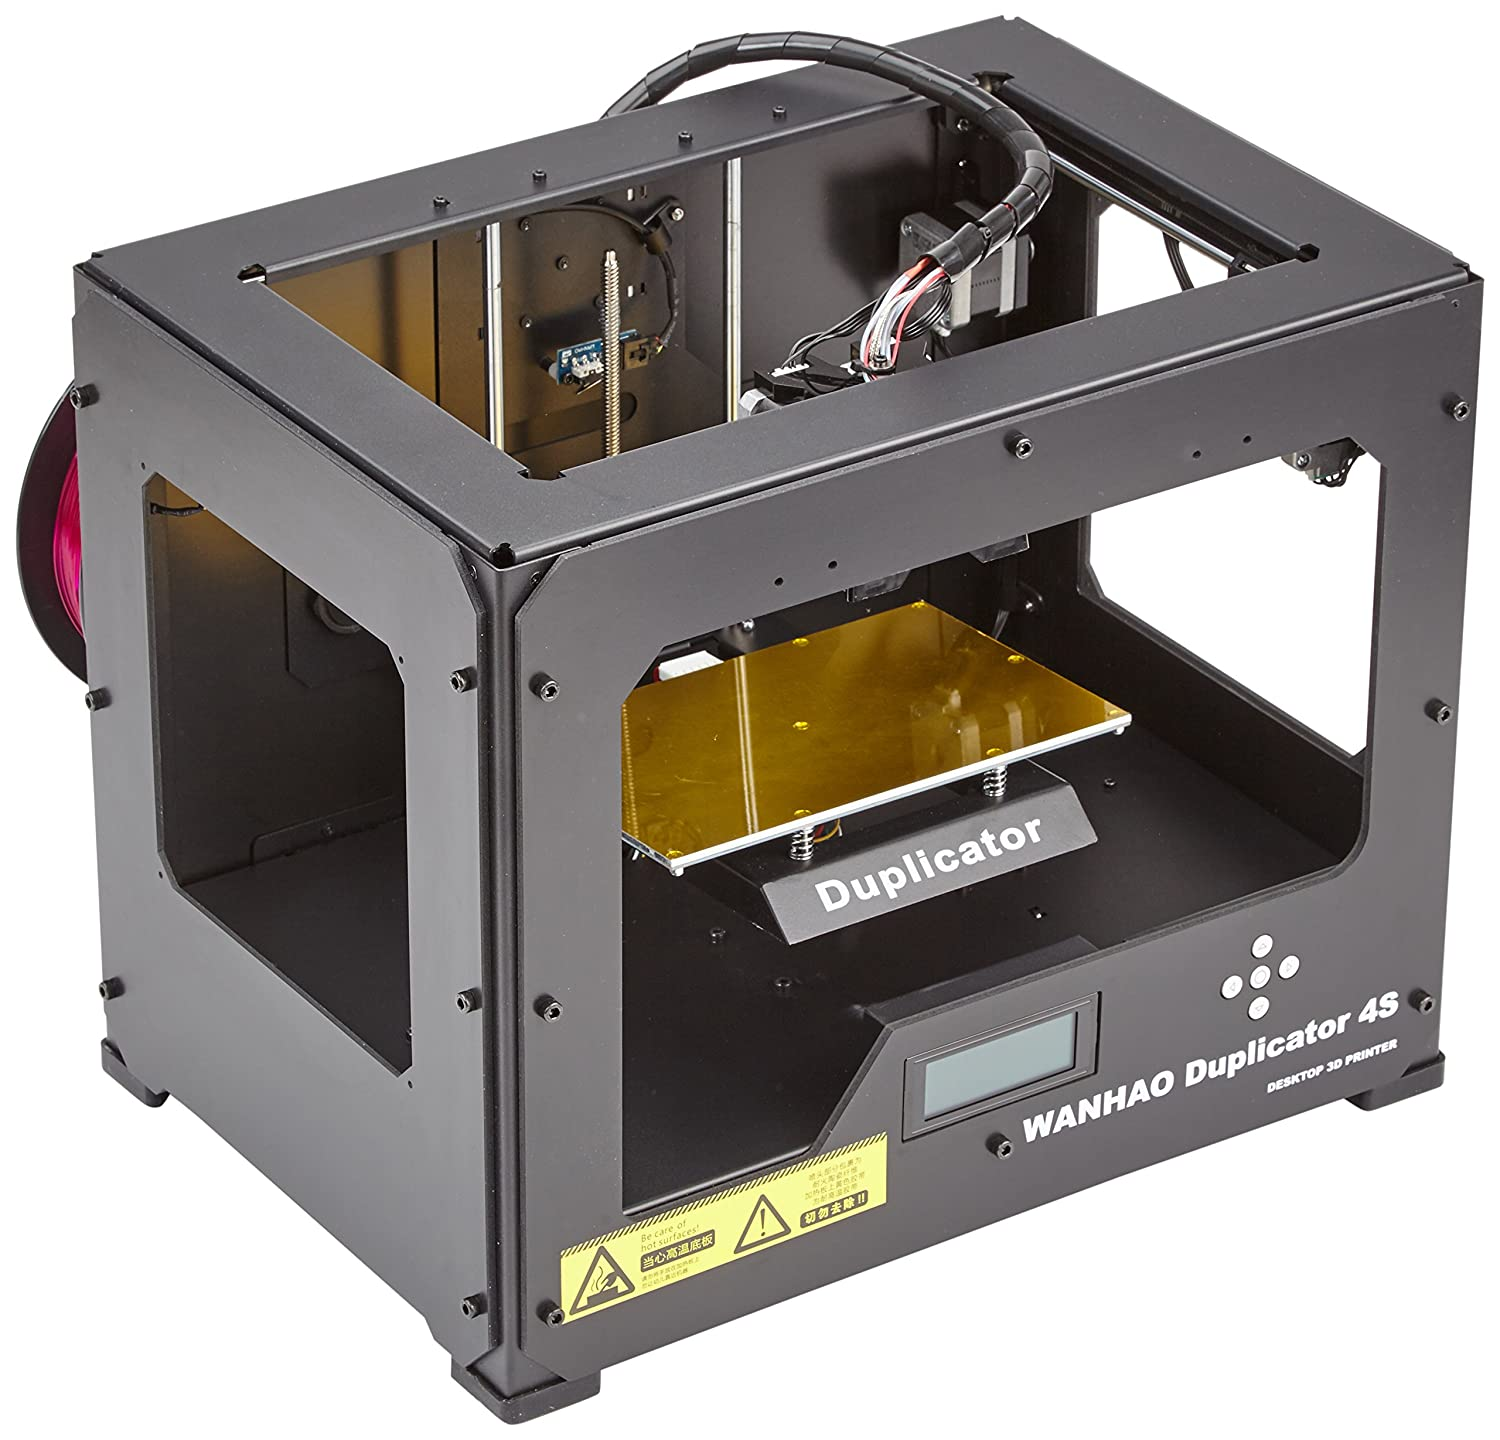 Wanhao Duplicator 4S 3D Printer in Metal Frame Black Case Dual ...